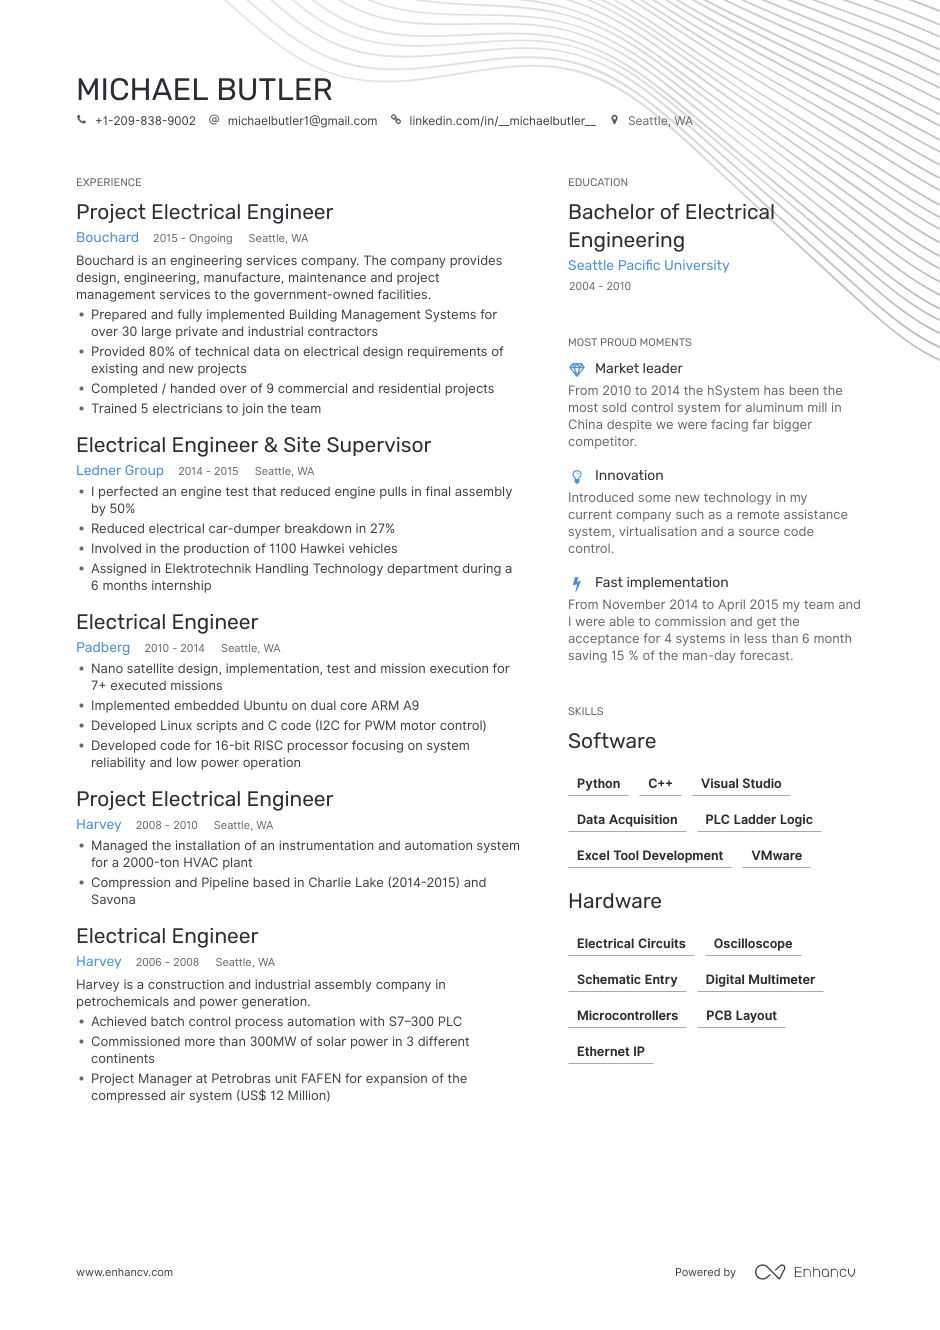 electrical engineer resume examples pro tips featured enhancv title for engineering Resume Resume Title For Electrical Engineer